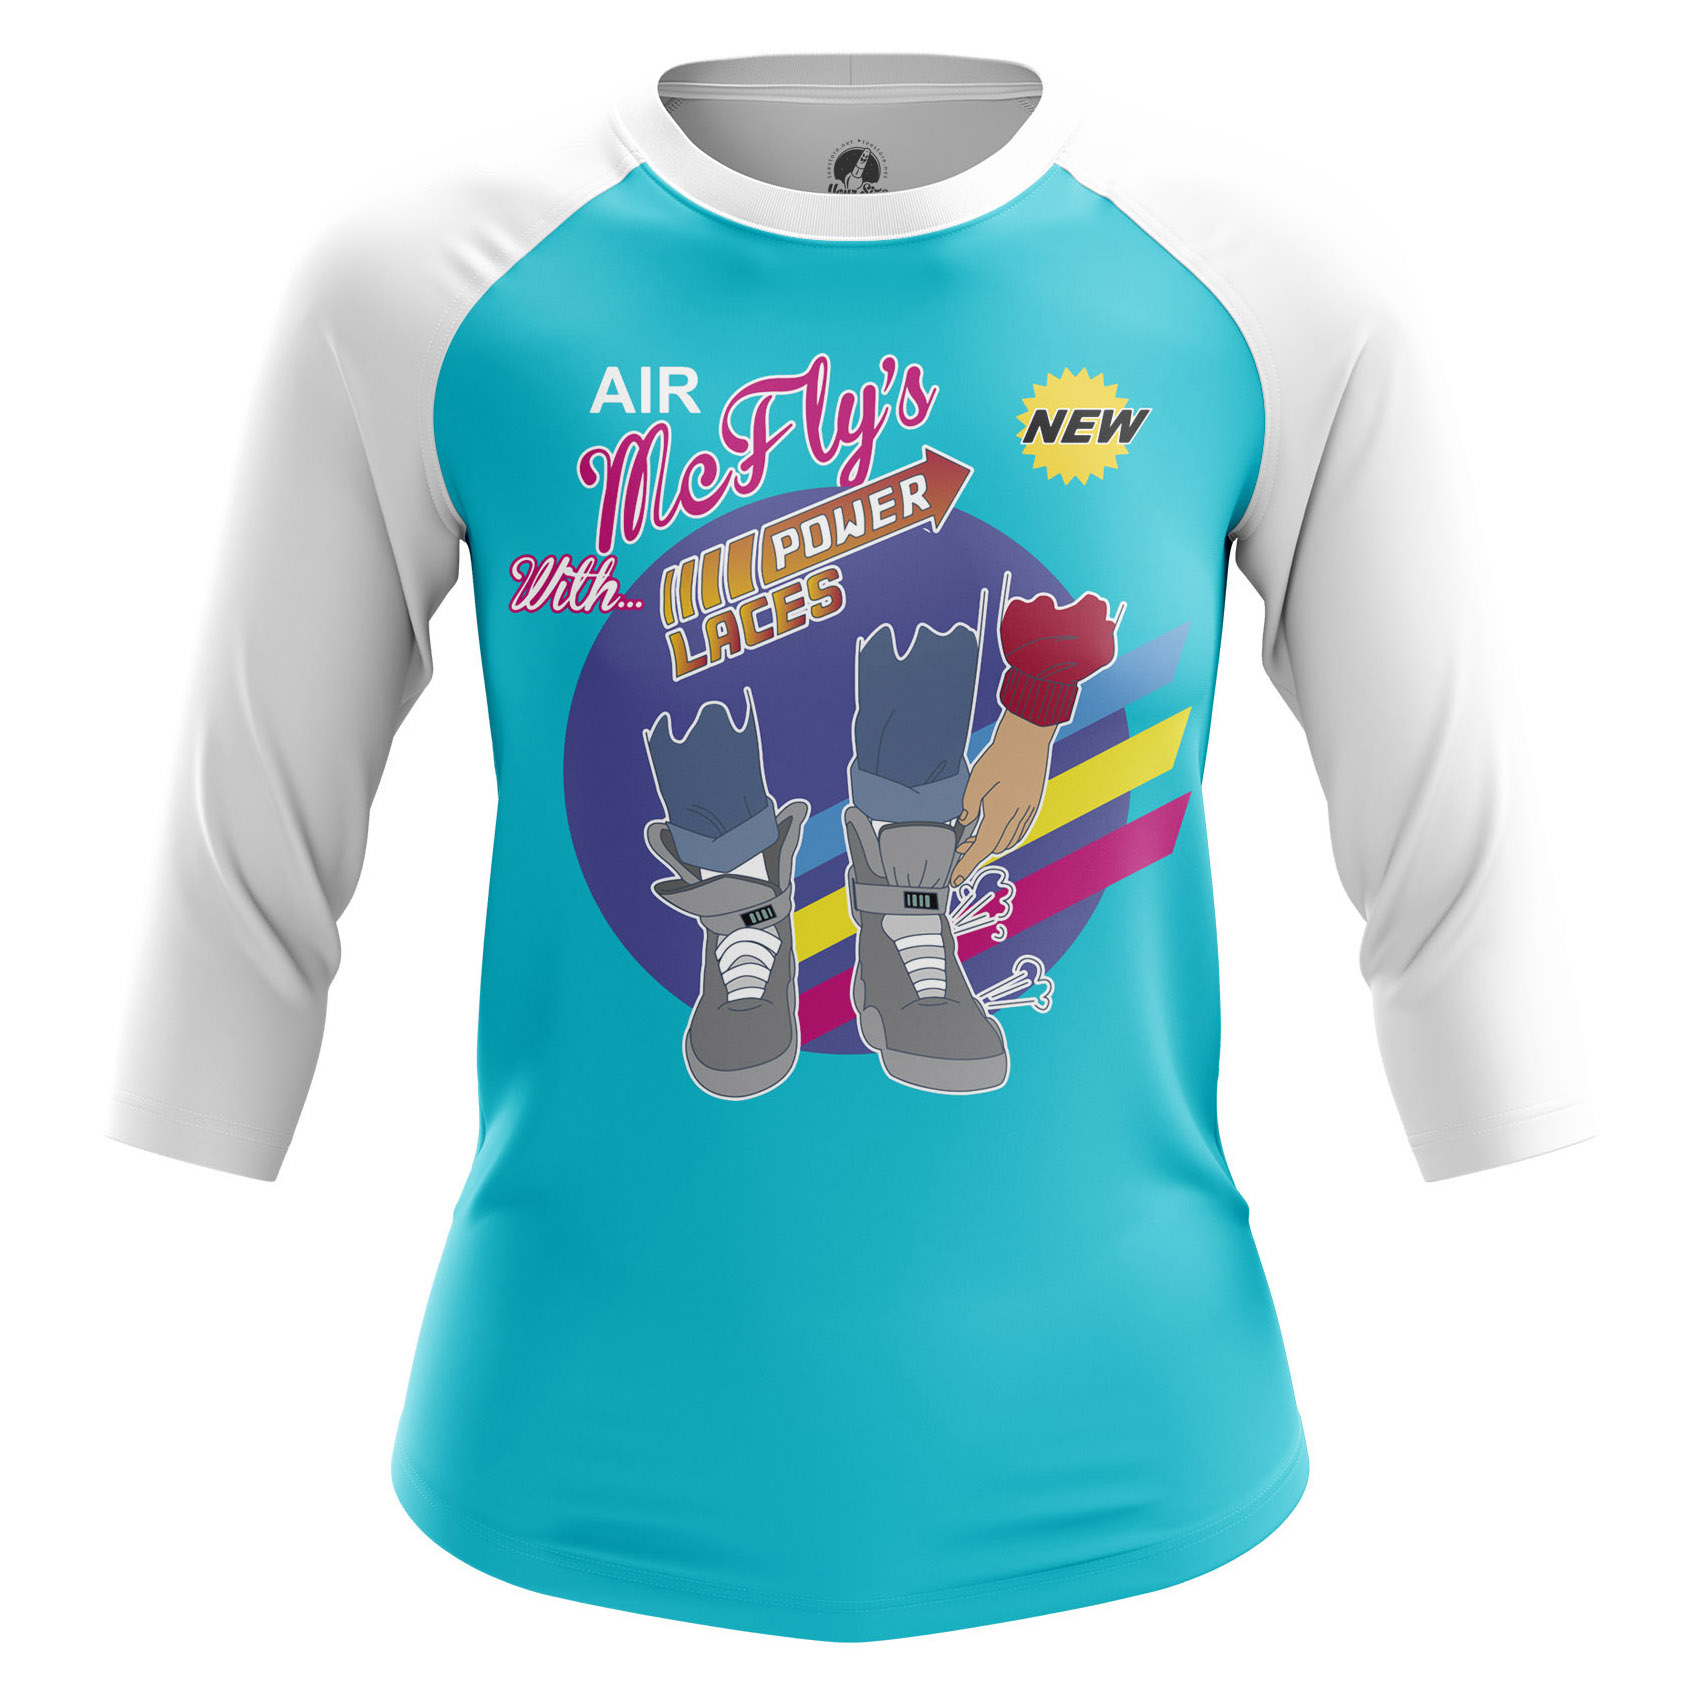 Merchandise Women'S Long Sleeve Mcfly'S Power Laces Back To Future